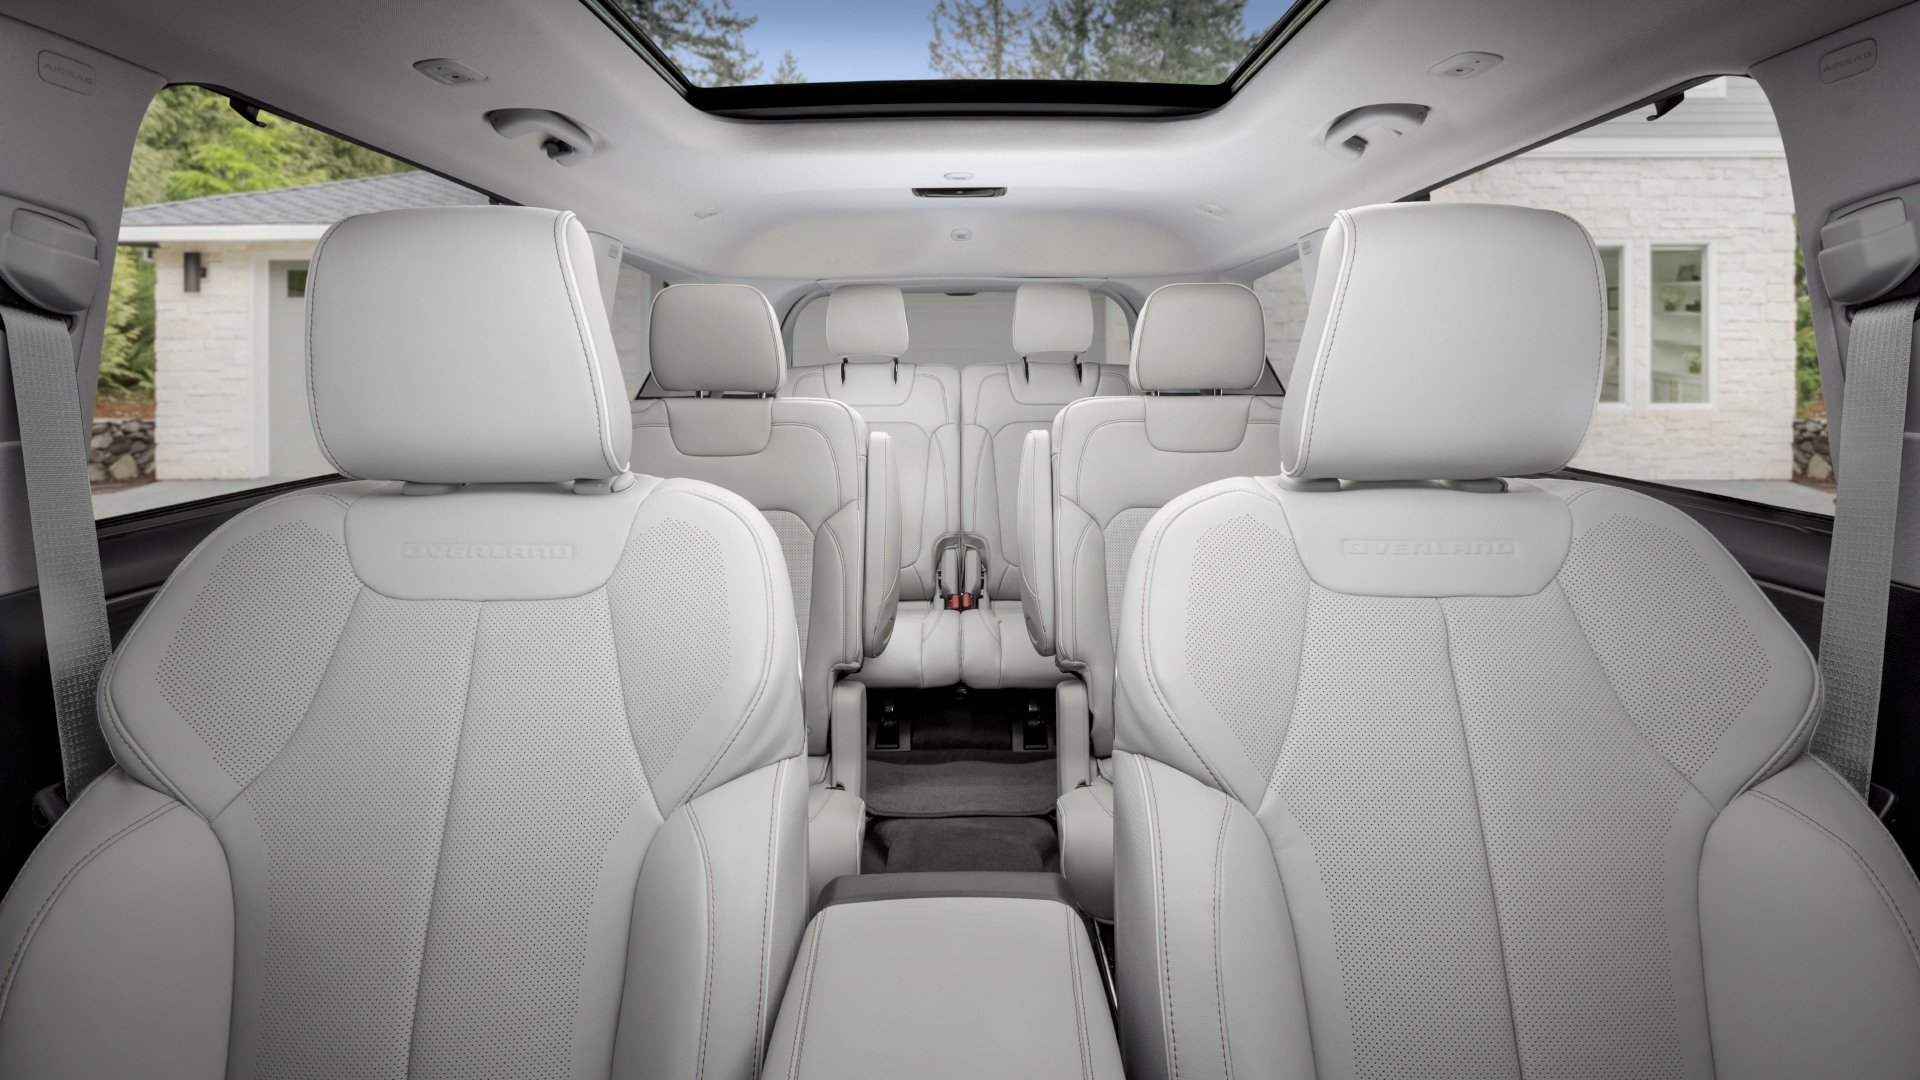 The Jeep Grand Cherokee L passenger seats